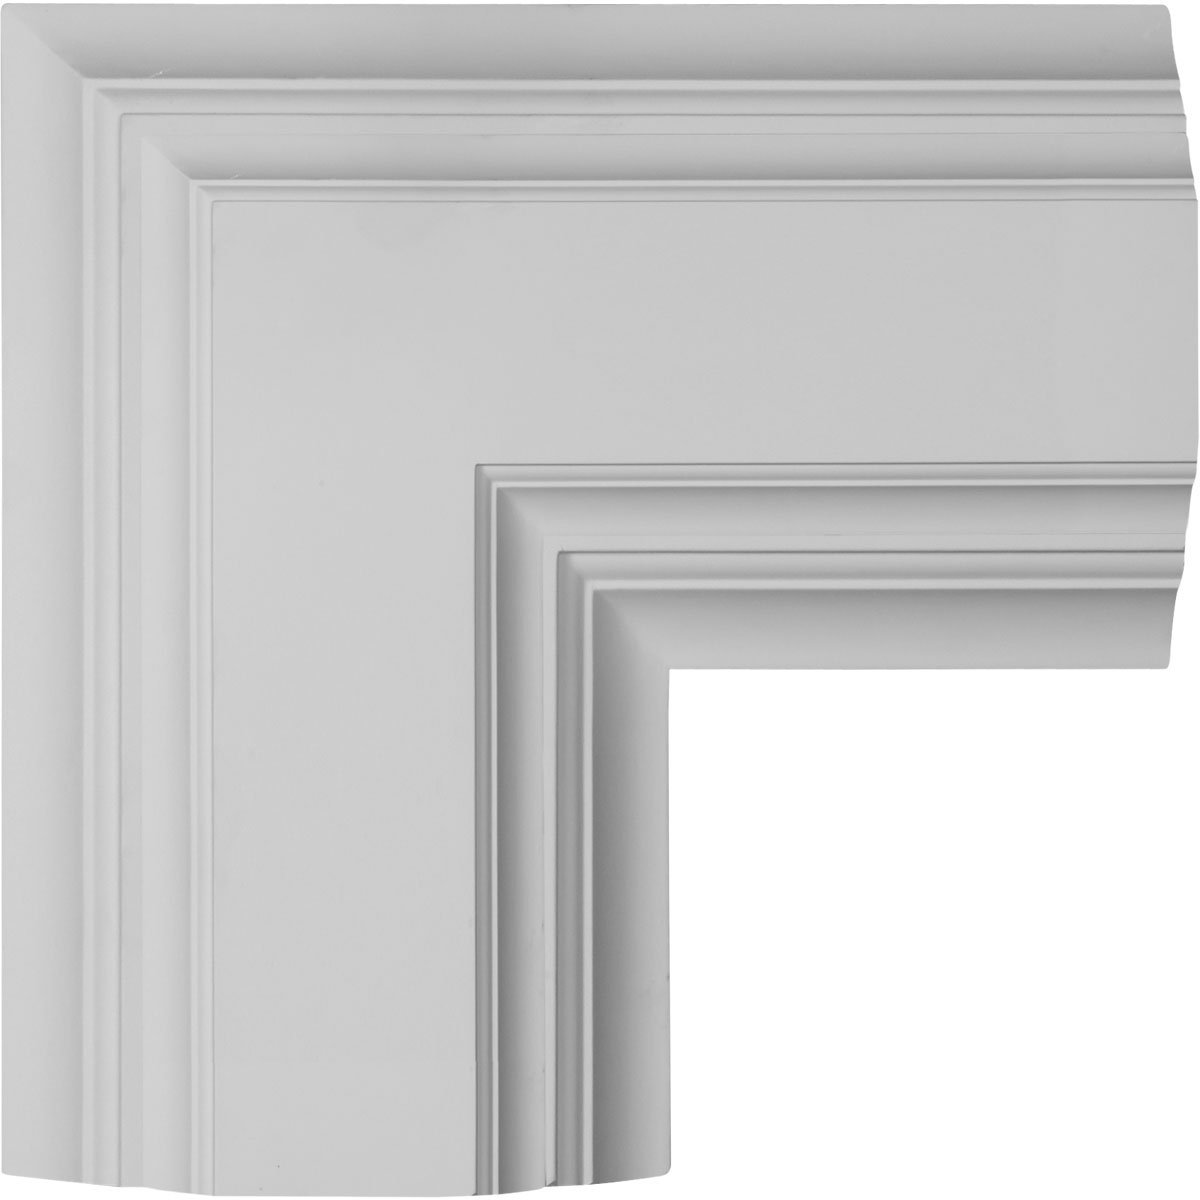 Ekena Millwork CC08IDI04X36X36DE 36W x 4P x 36L Inner Diamond Intersection for 8 Deluxe Coffered Ceiling System (Kit)